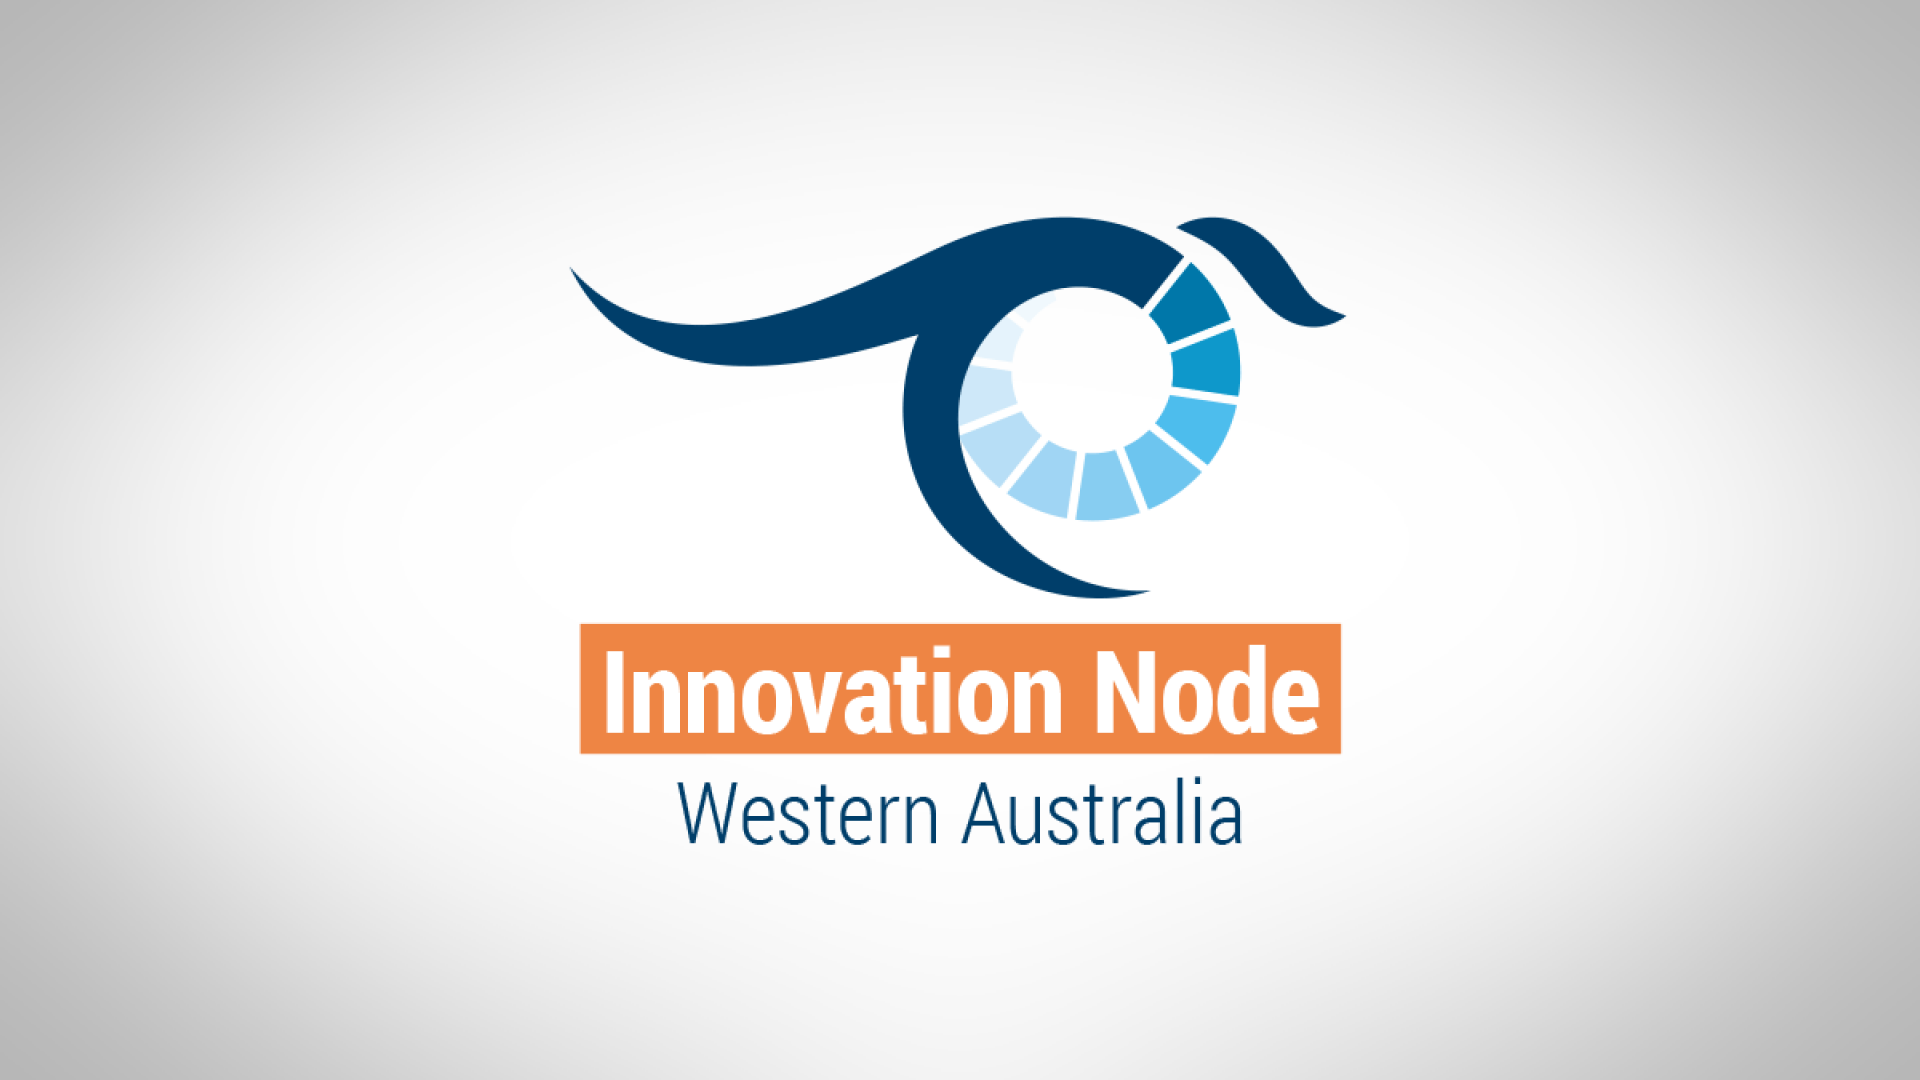 Innovation Node Western Australia